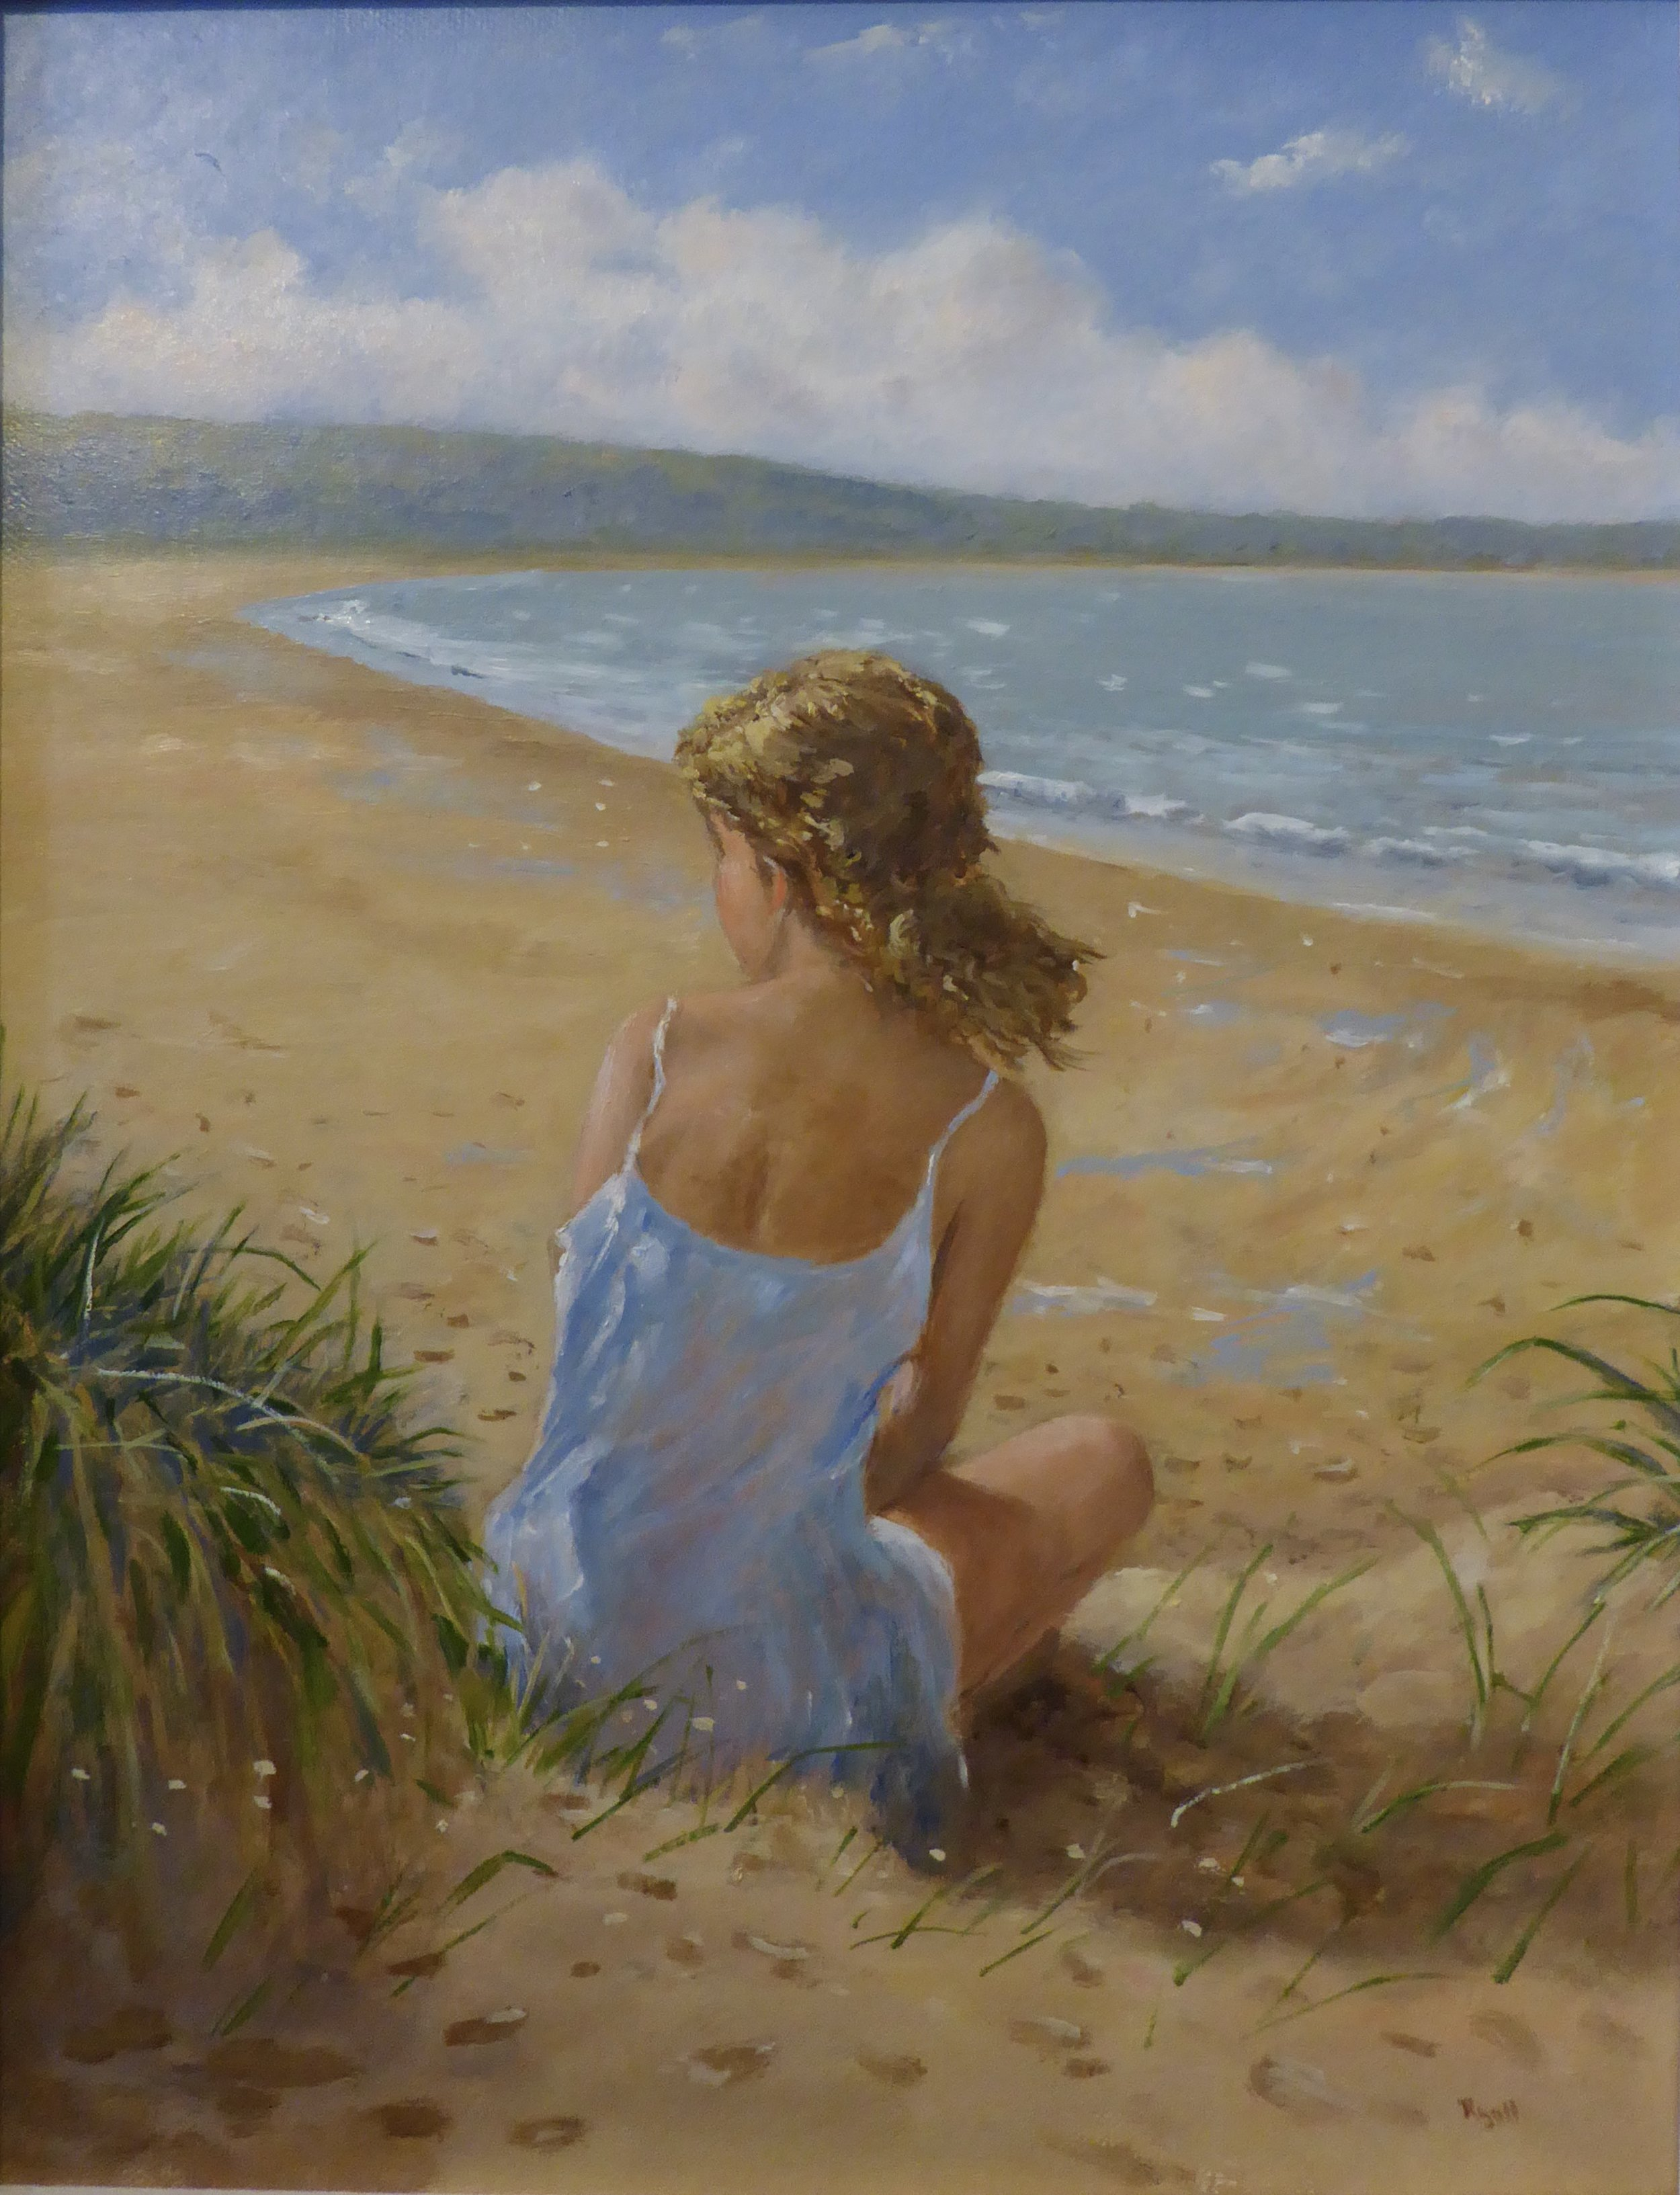 YOUNG GIRL BY OXWICH BAY    11 x 14 inches -  £425